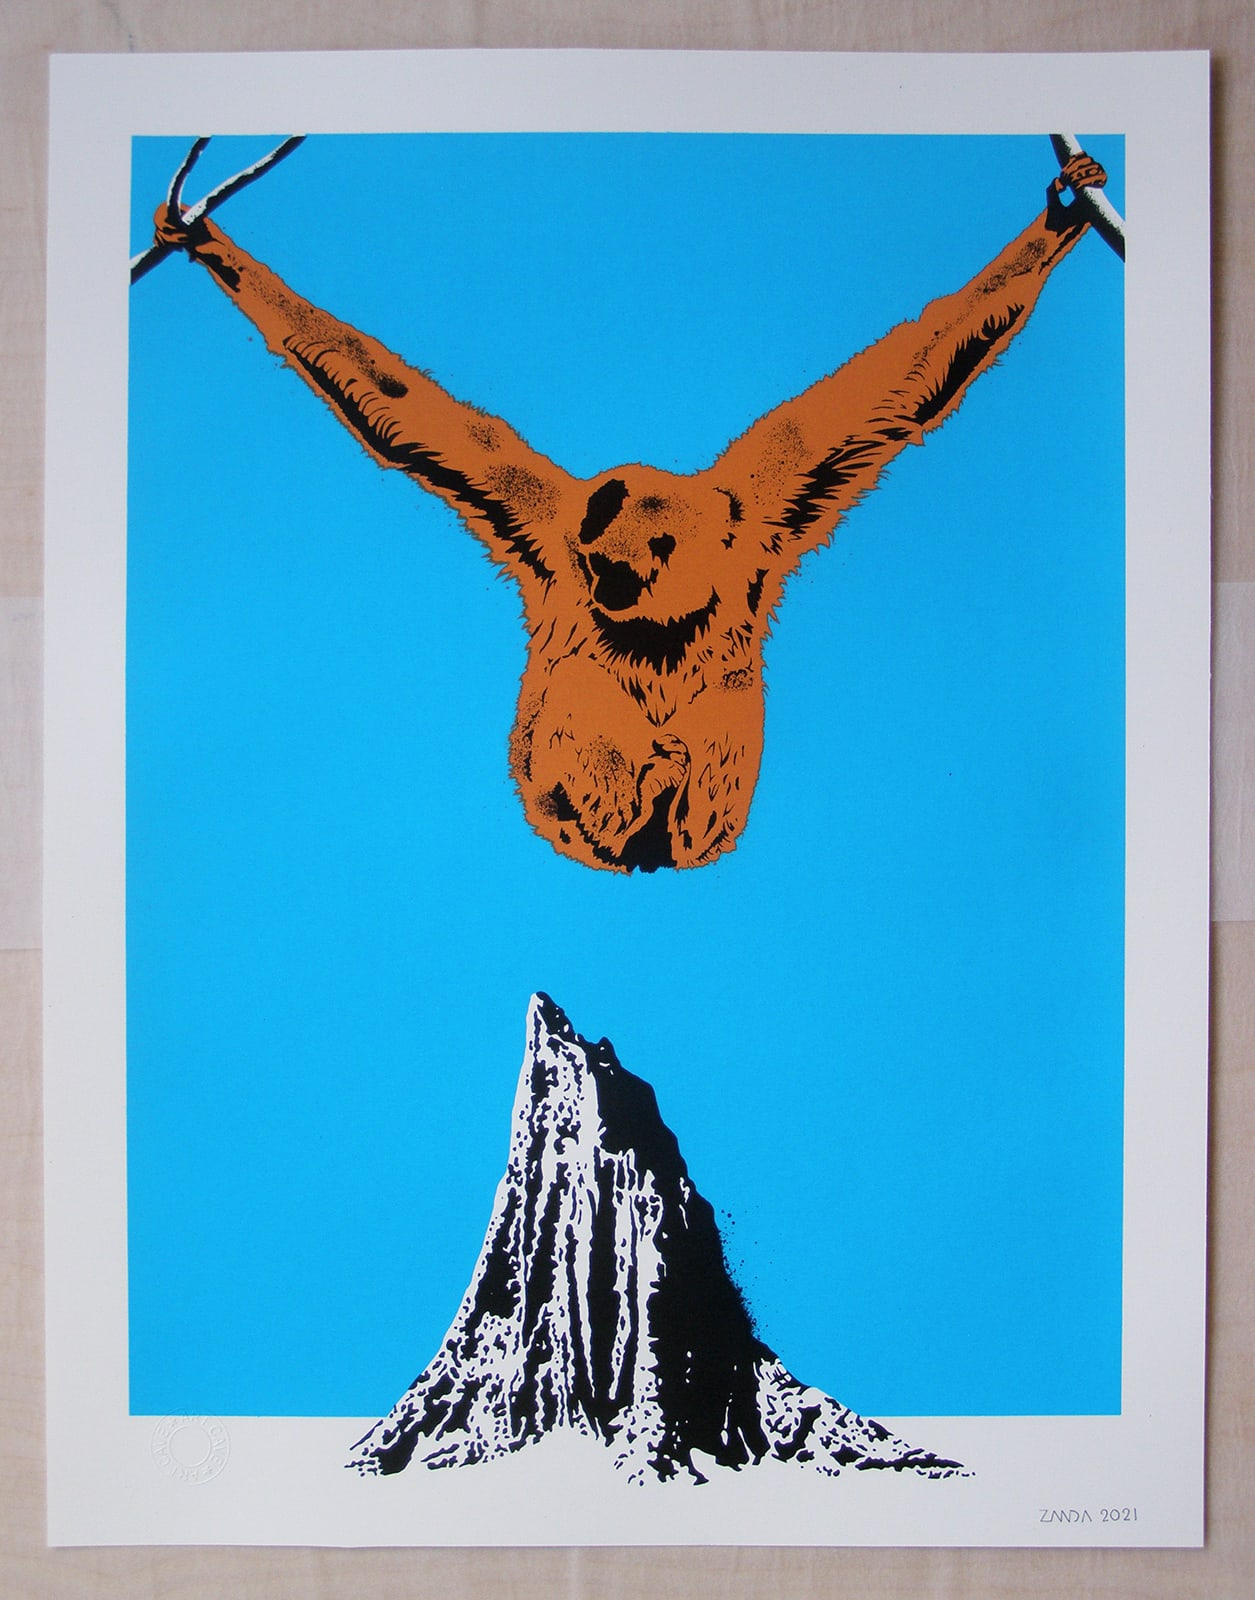 Alex Zanda, Hanging on Print After a year of sustained stamina in the face of unrelenting challenges, this unsettling print seems to talk to contemporary conditions and a national mood.